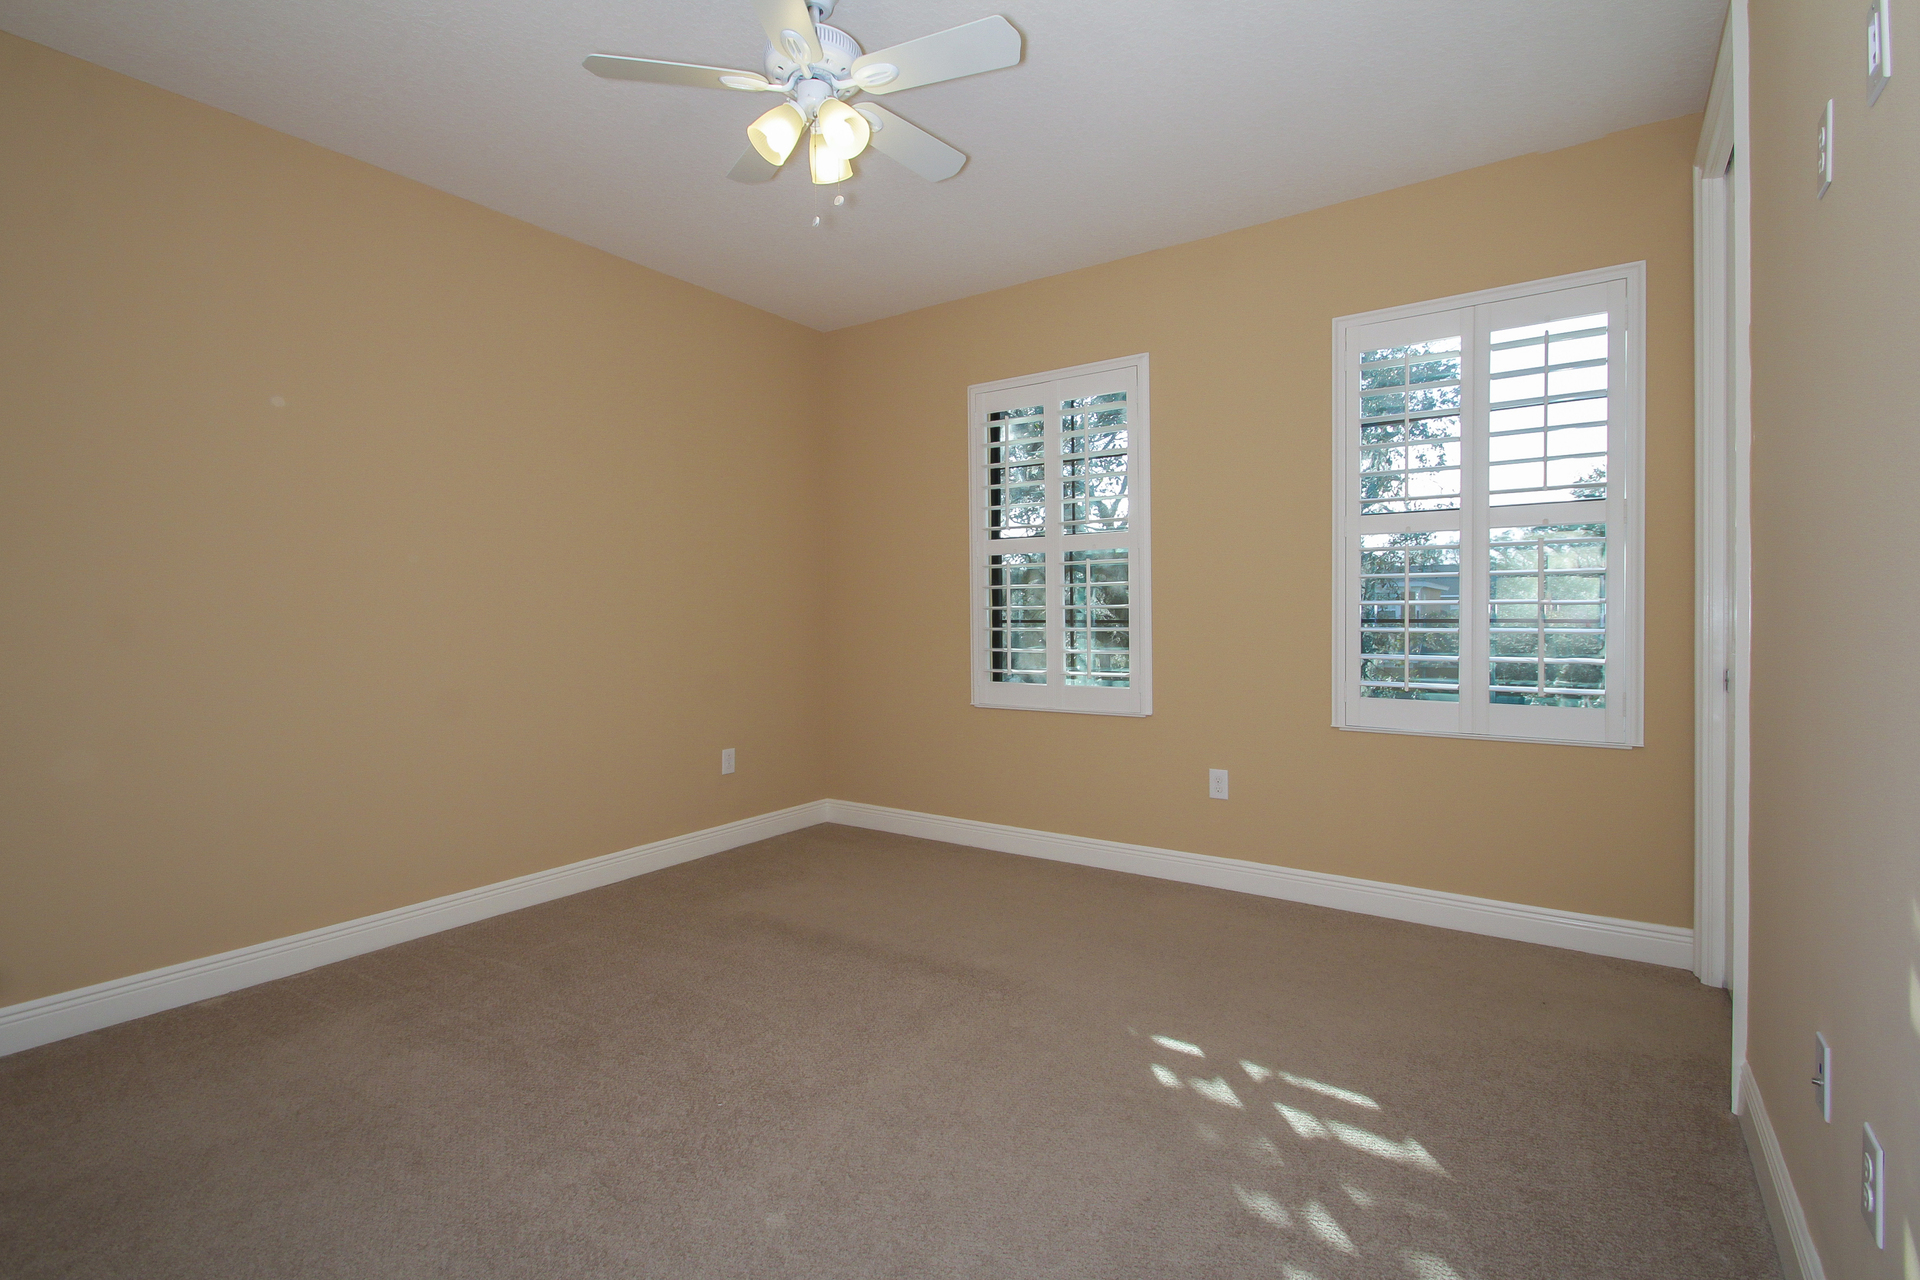 Photo of 5332 Sage Crest Drive, Lithia, FL, 33547